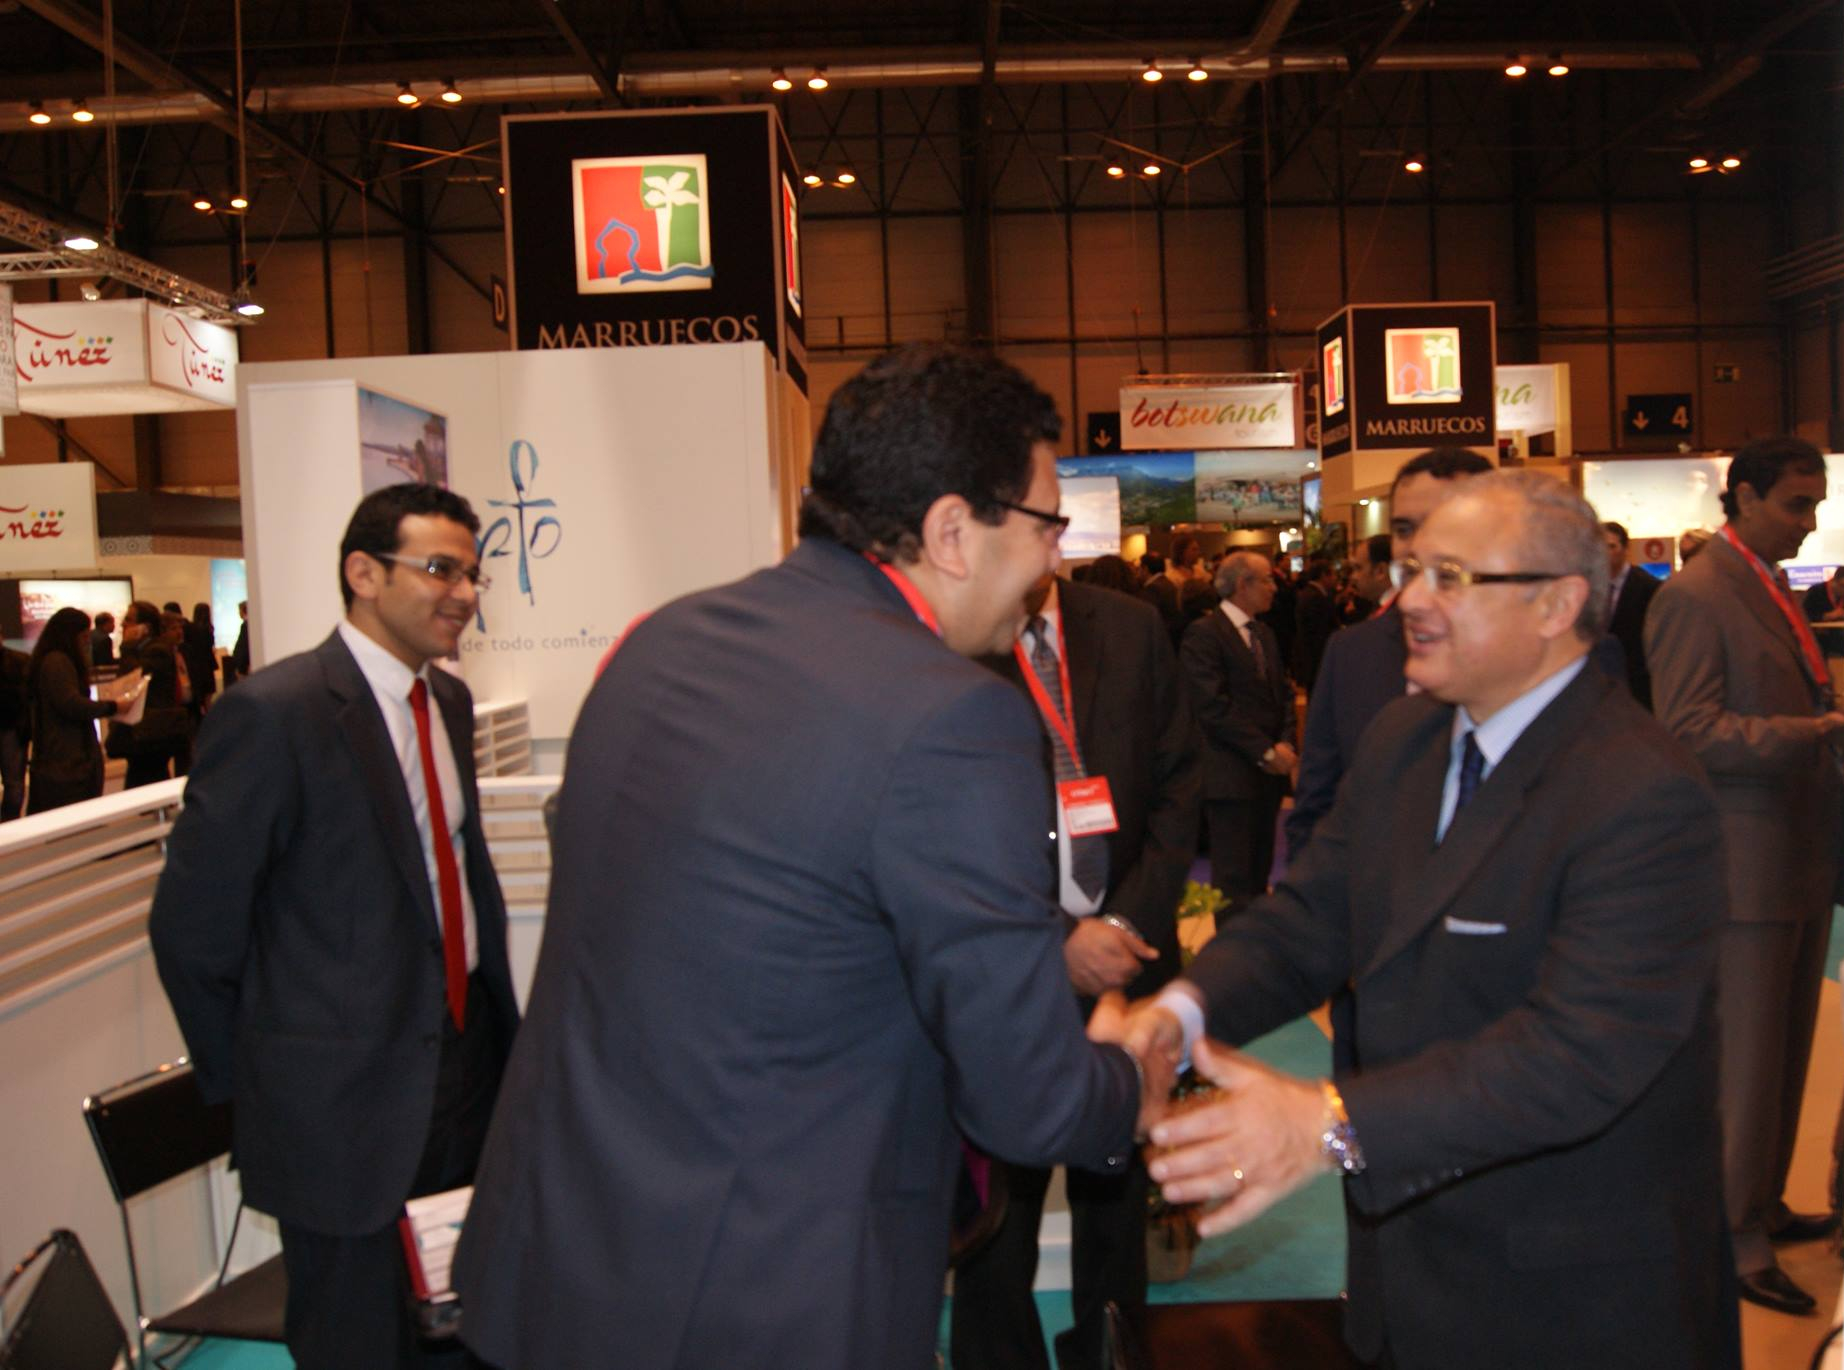 Nilers Tours CEO welcoming his excellency The Tourism Minister of Egypt during (FITUR)International Tourism Trade Fair of Madrid